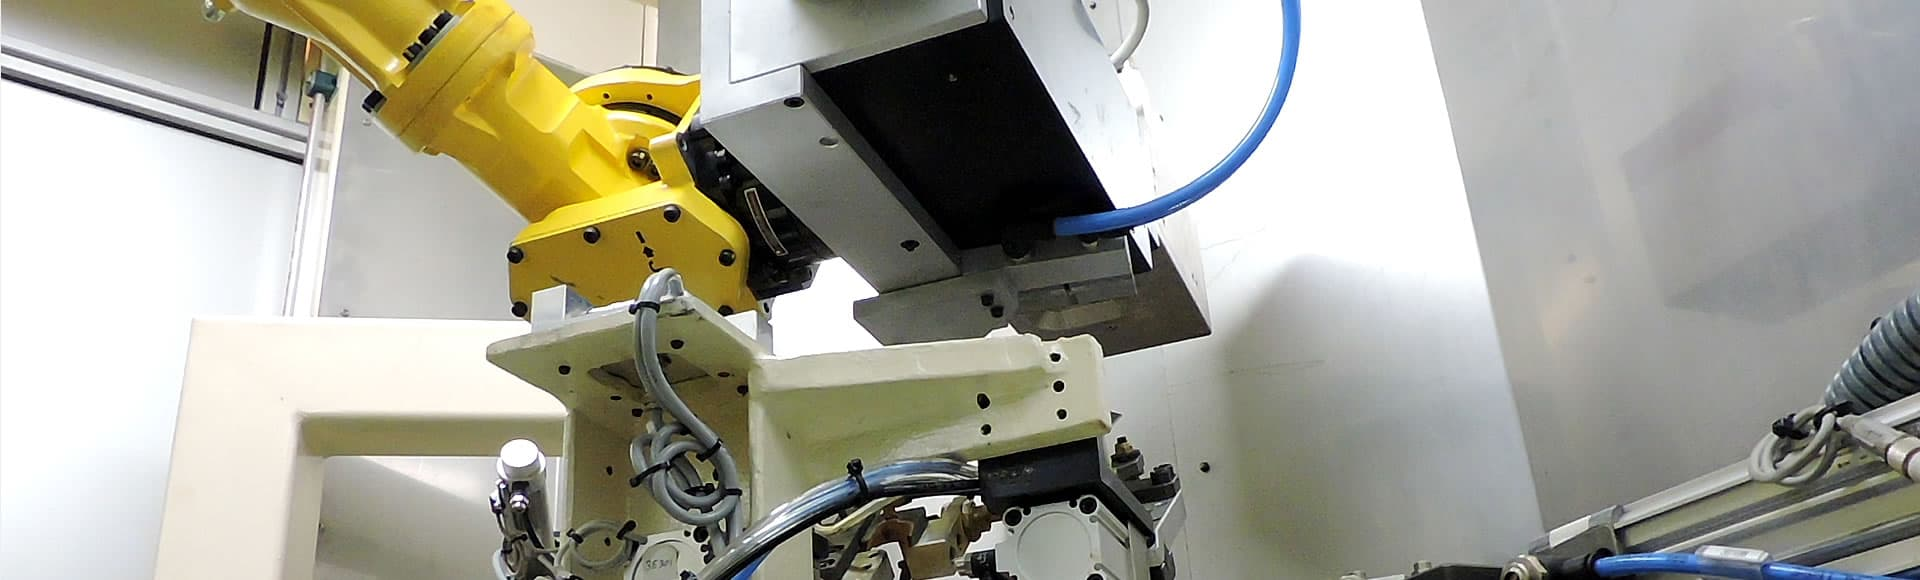 Lantec, design and manufacture of laser welding machines.